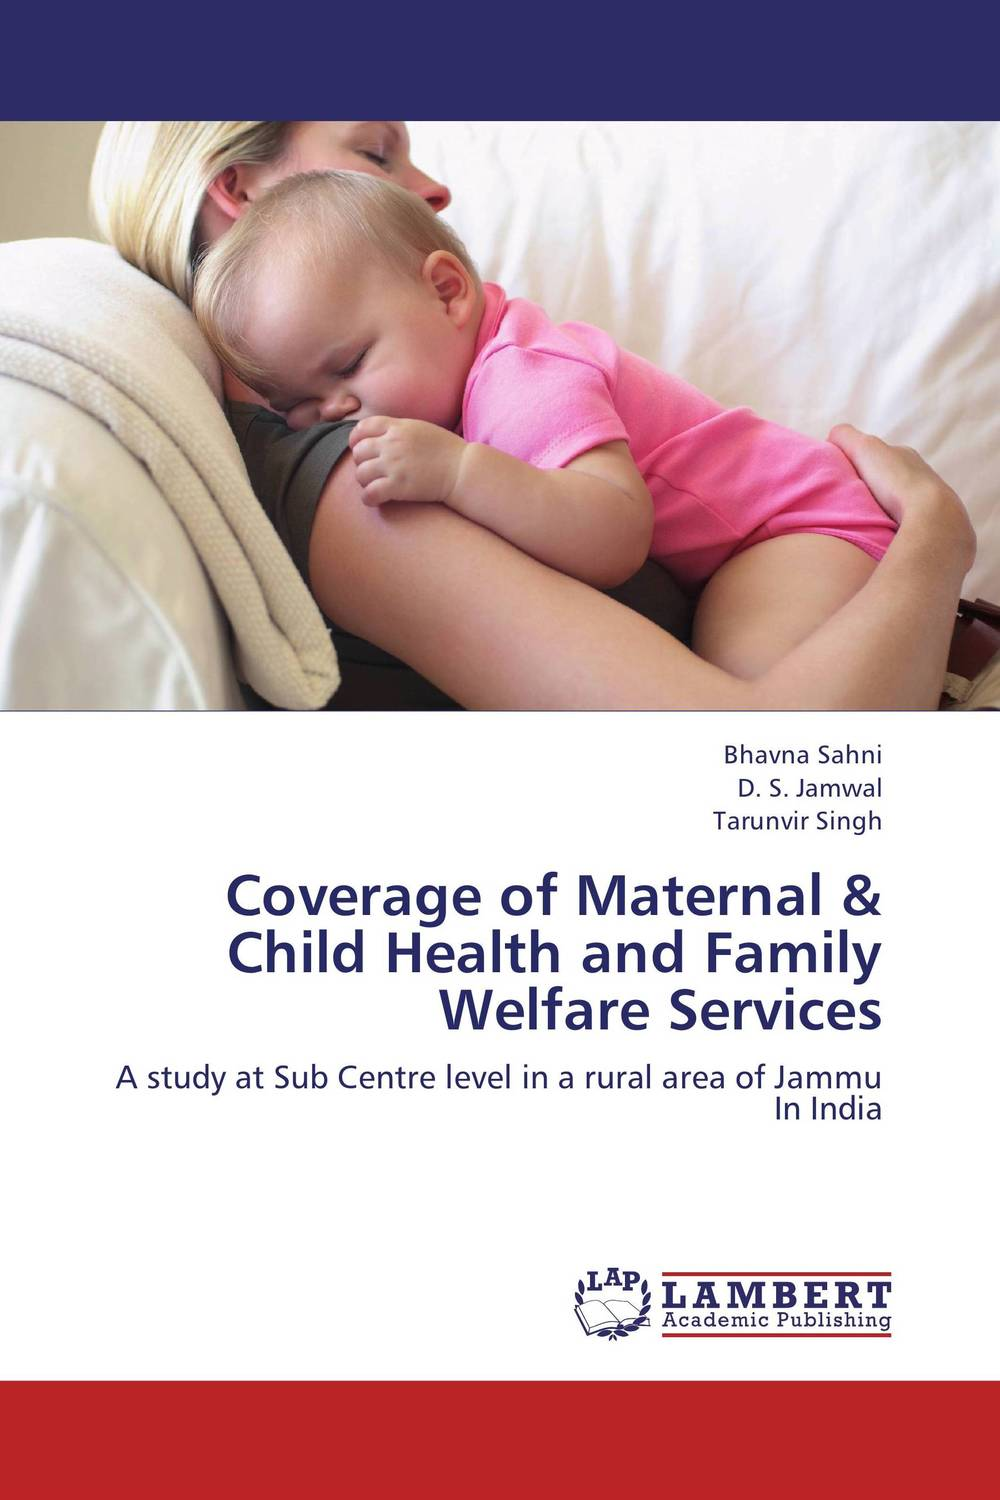 Coverage of Maternal & Child Health and Family Welfare Services